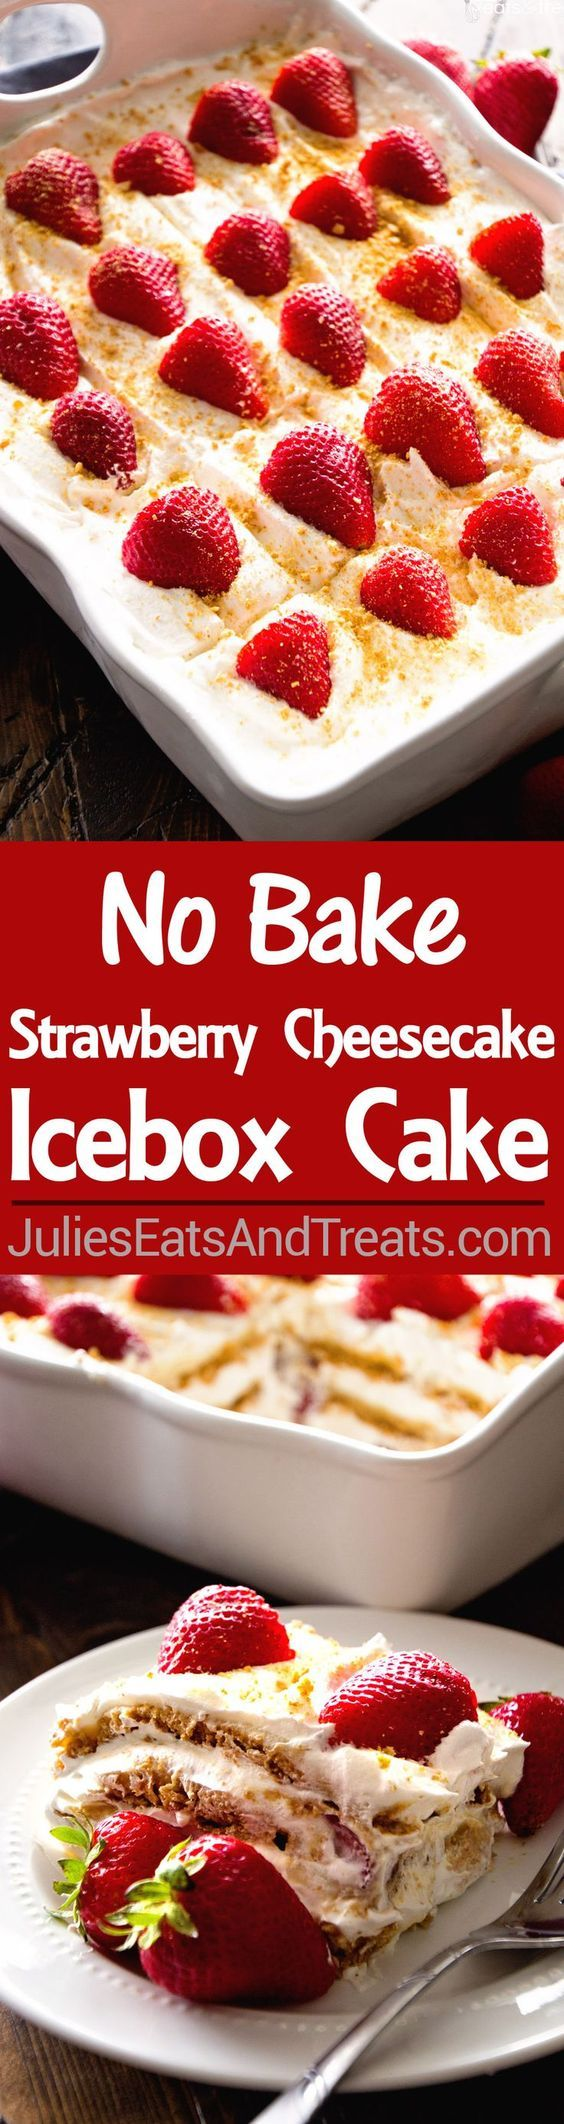 No Bake Strawberry Cheesecake Icebox Cake Recipe ~ This Easy No-Bake Dessert is…